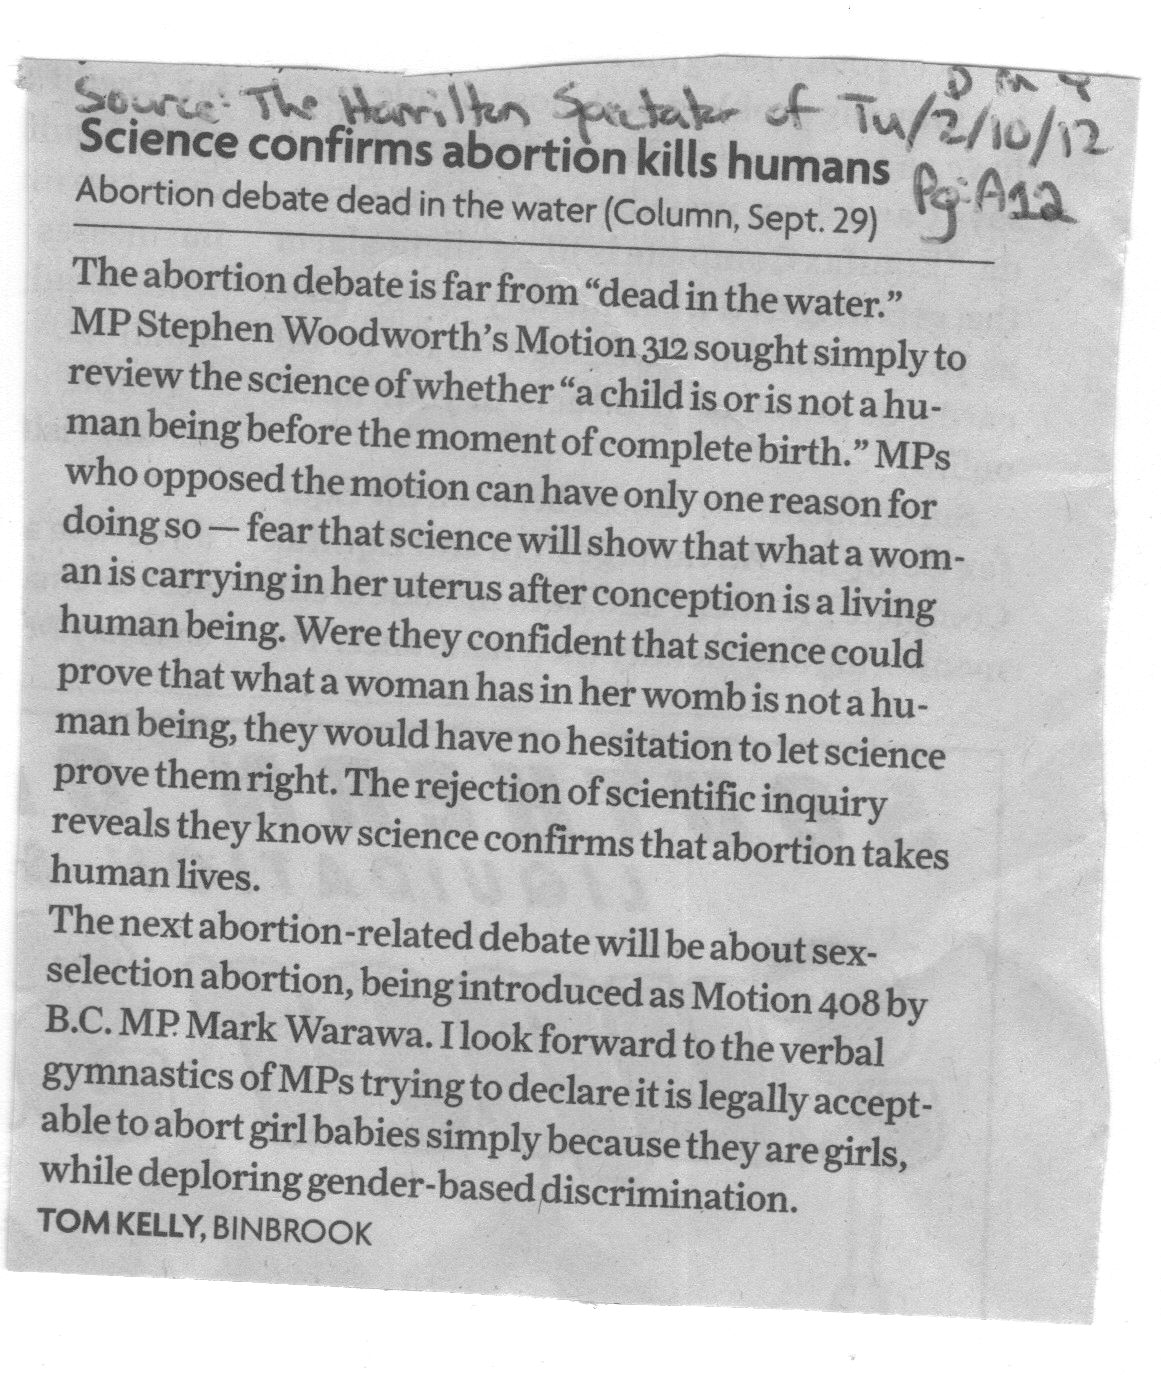 pro choice letter to the editor The article judge blocks fetal heartbeat abortion ban (web, july 22) includes a report on a personhood amendment passed by the north dakota legislature that voters will decide on in november 2014.